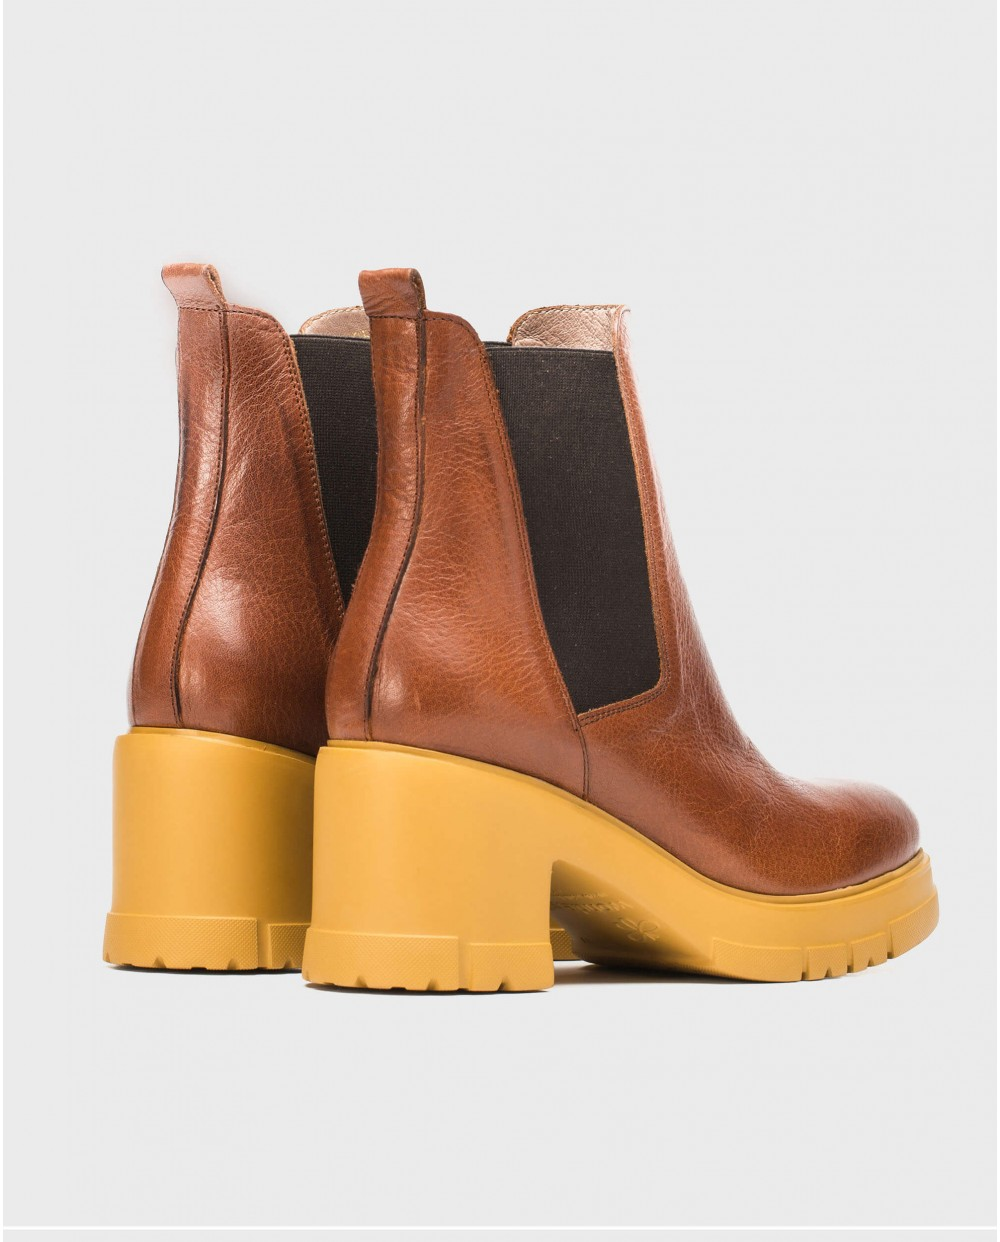 Wonders-Ankle Boots-Ankle boot with track sole and elastic